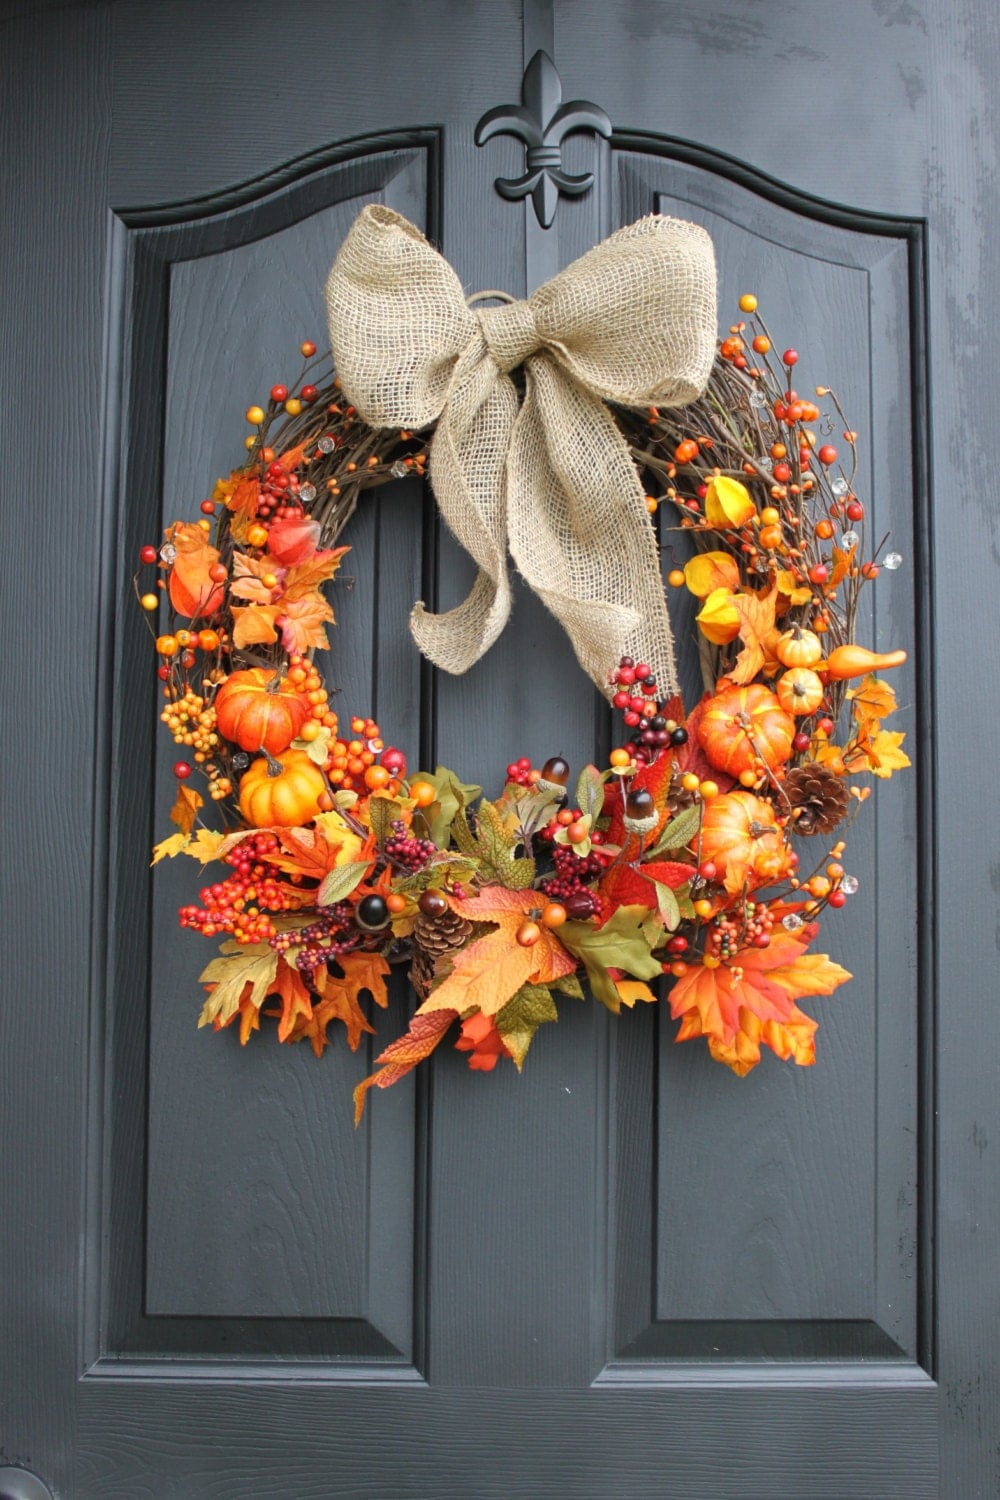 Unavailable Listing On Etsy: fall autumn door wreaths